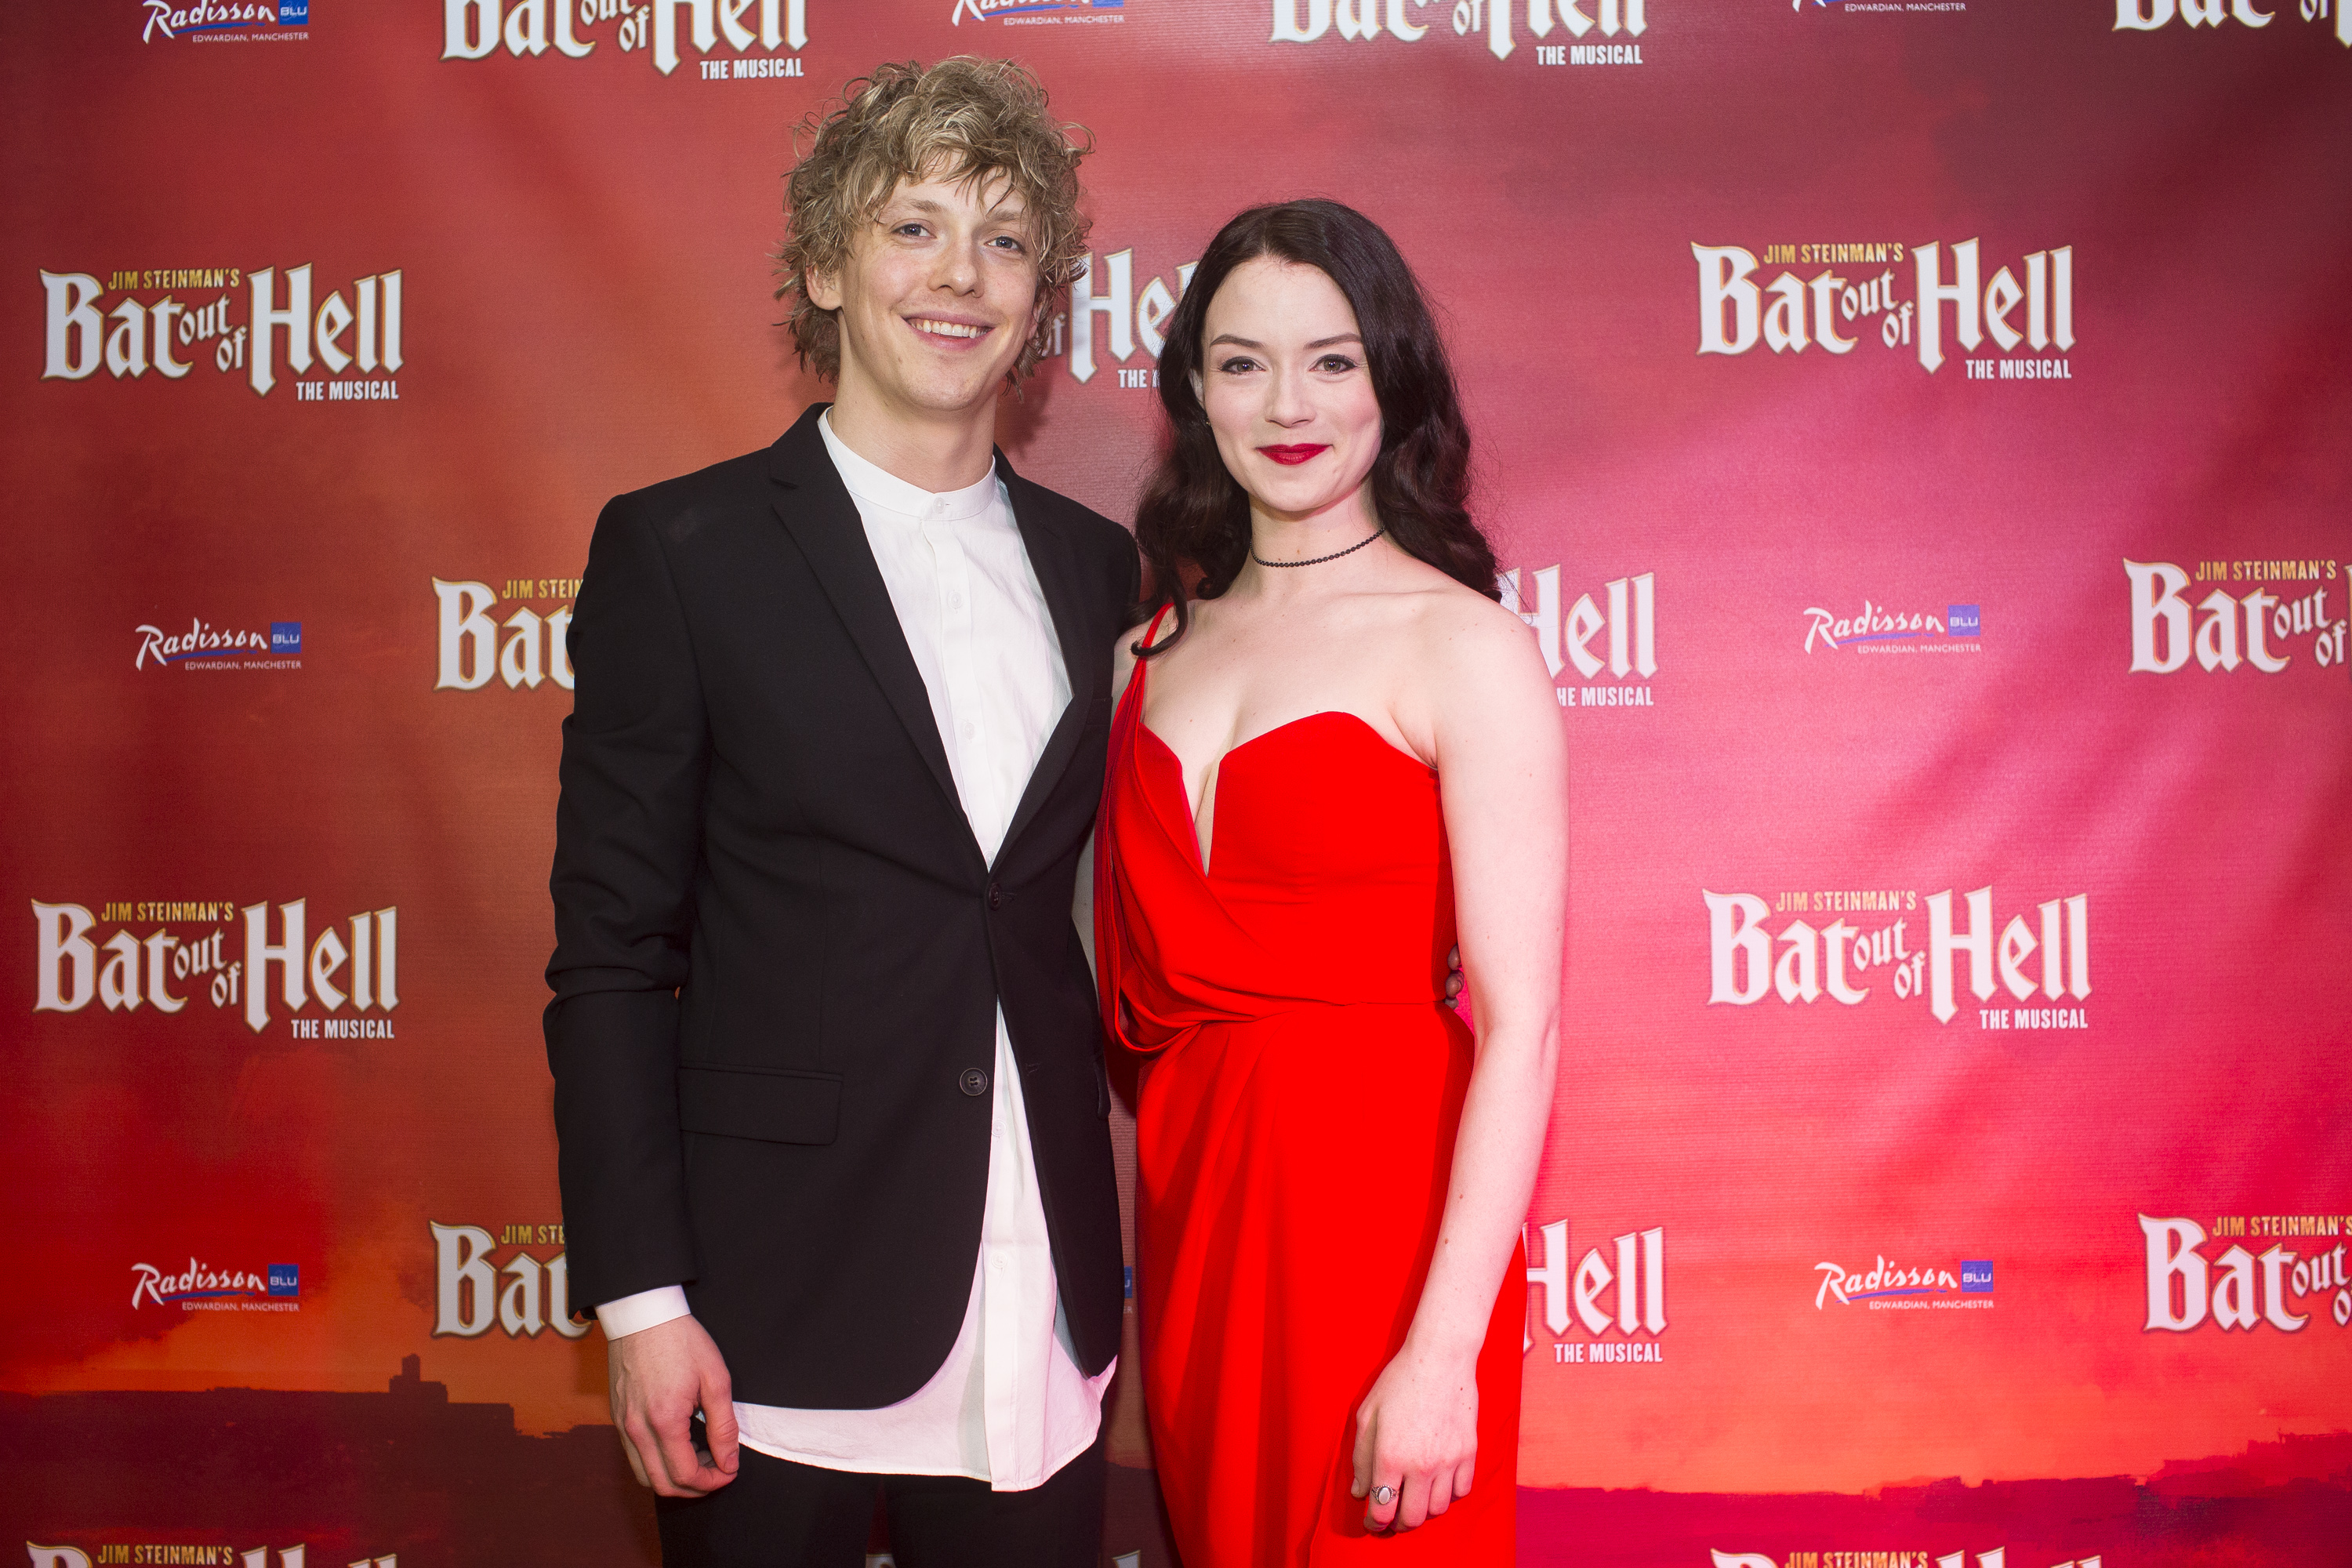 Andrew Polec (Strat) & Christina Bennington (Raven) at First Night of Bat Out of Hell Manchester Opera House credit Phil Tragen